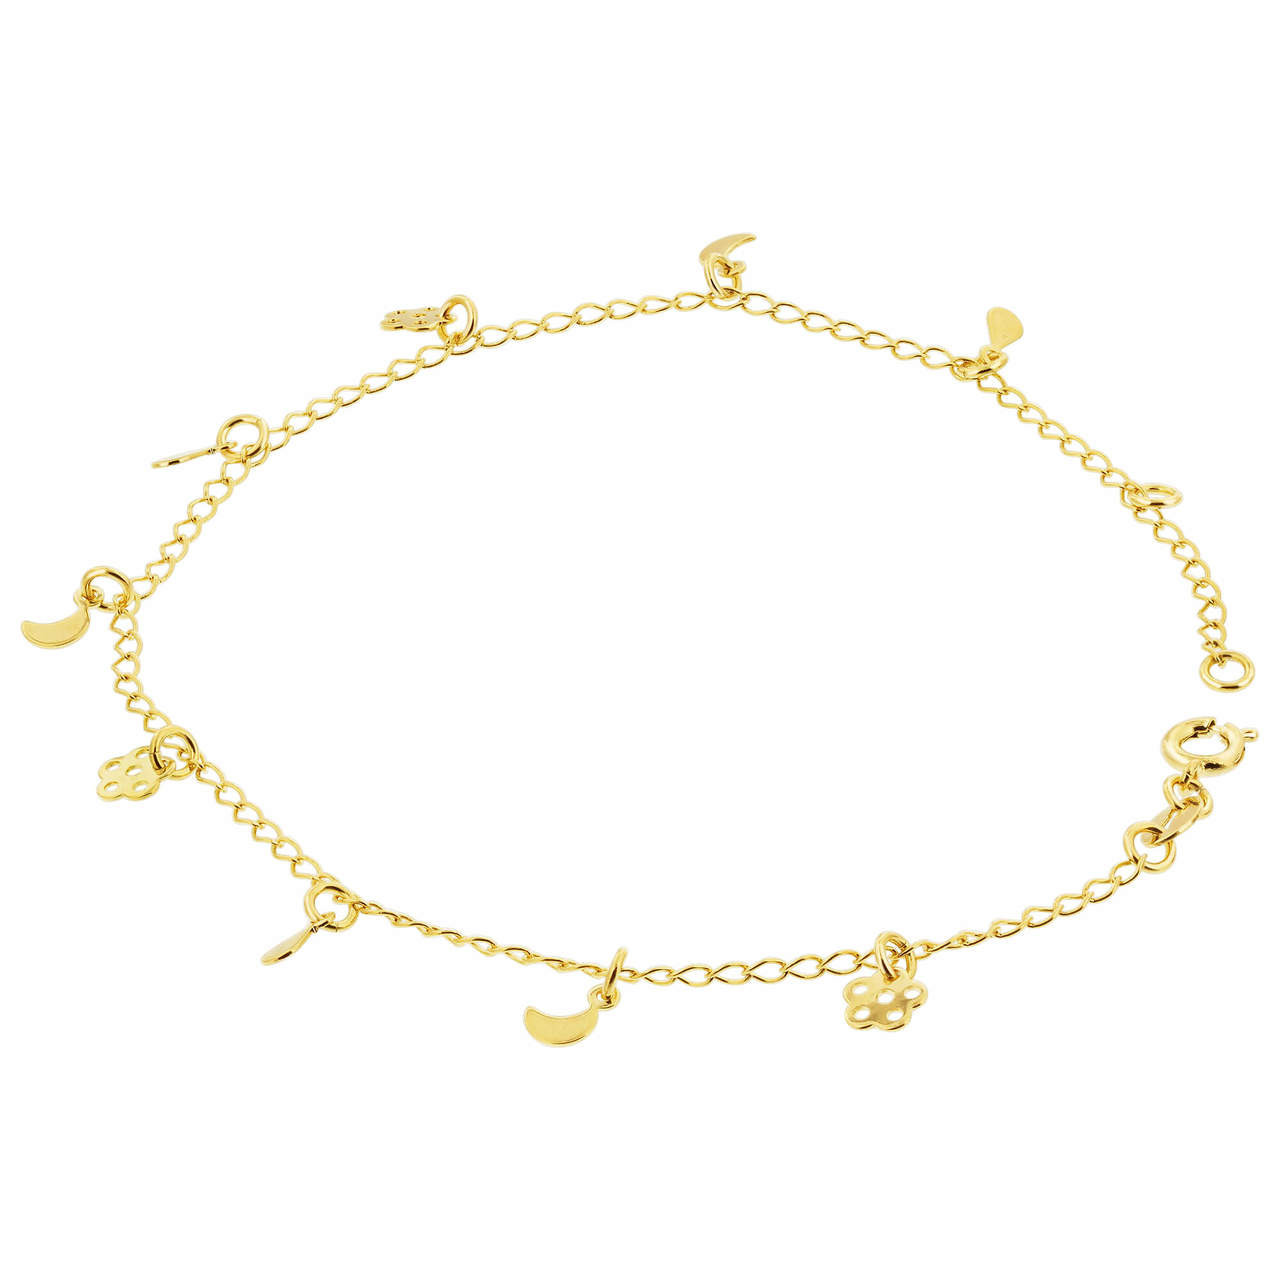 18k Gold Layered Crescent and Flower 2mm Chain Ankle Bracelet 9 to 10 inch